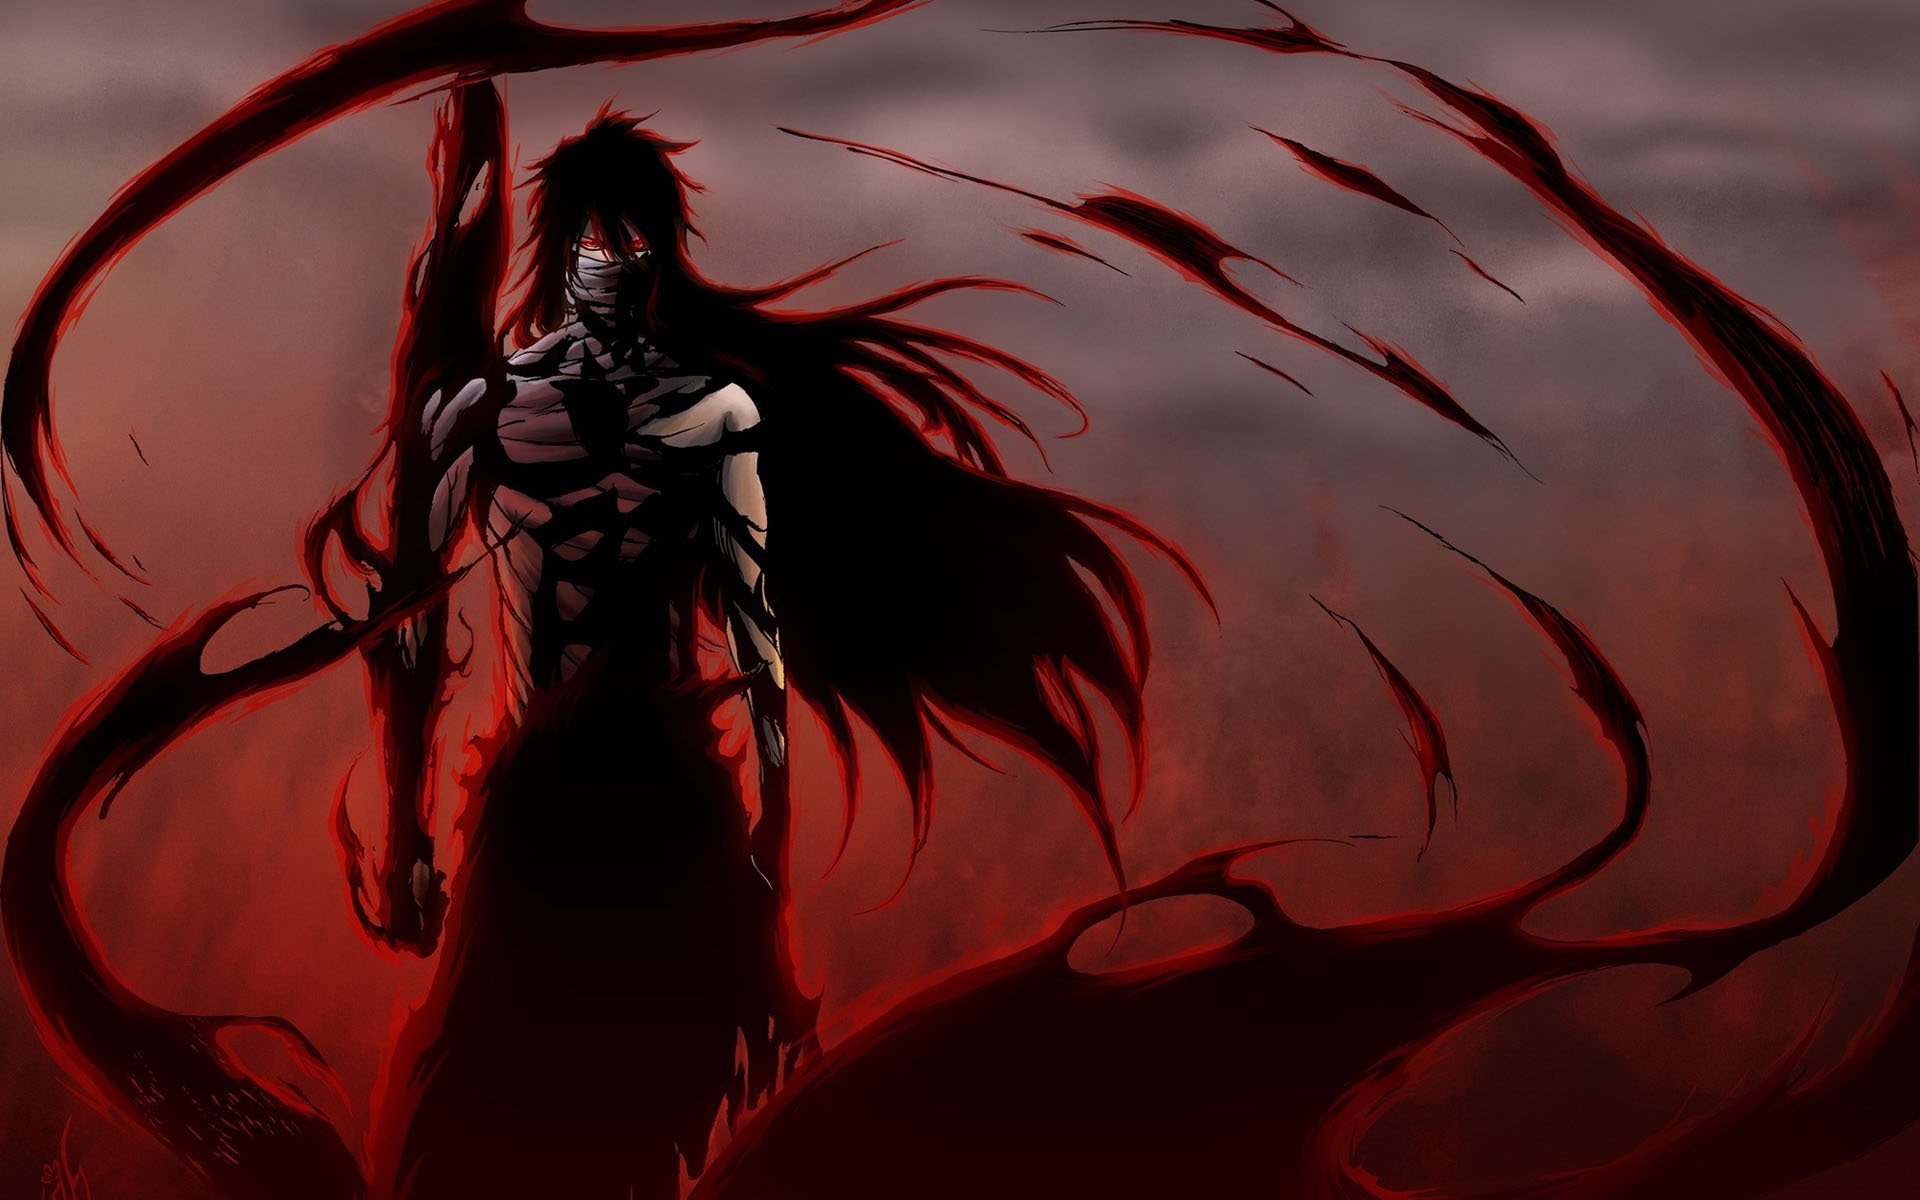 18939 download wallpaper Anime, Bleach, Cartoon, Men screensavers and pictures for free